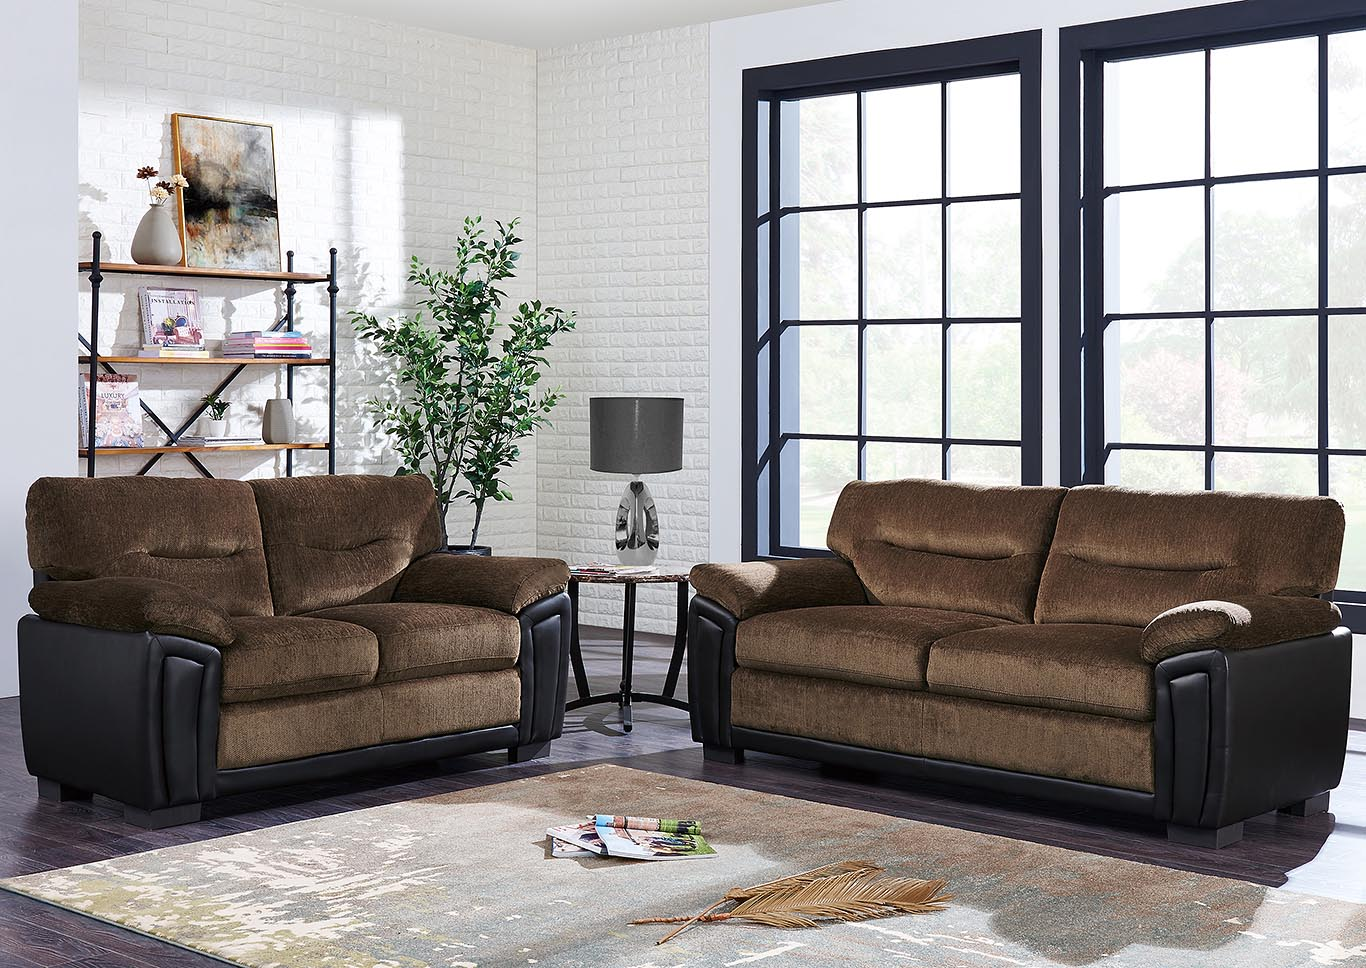 Fabulous Mr Discount Furniture Chicago Il Subaru Coffee Brown Gmtry Best Dining Table And Chair Ideas Images Gmtryco